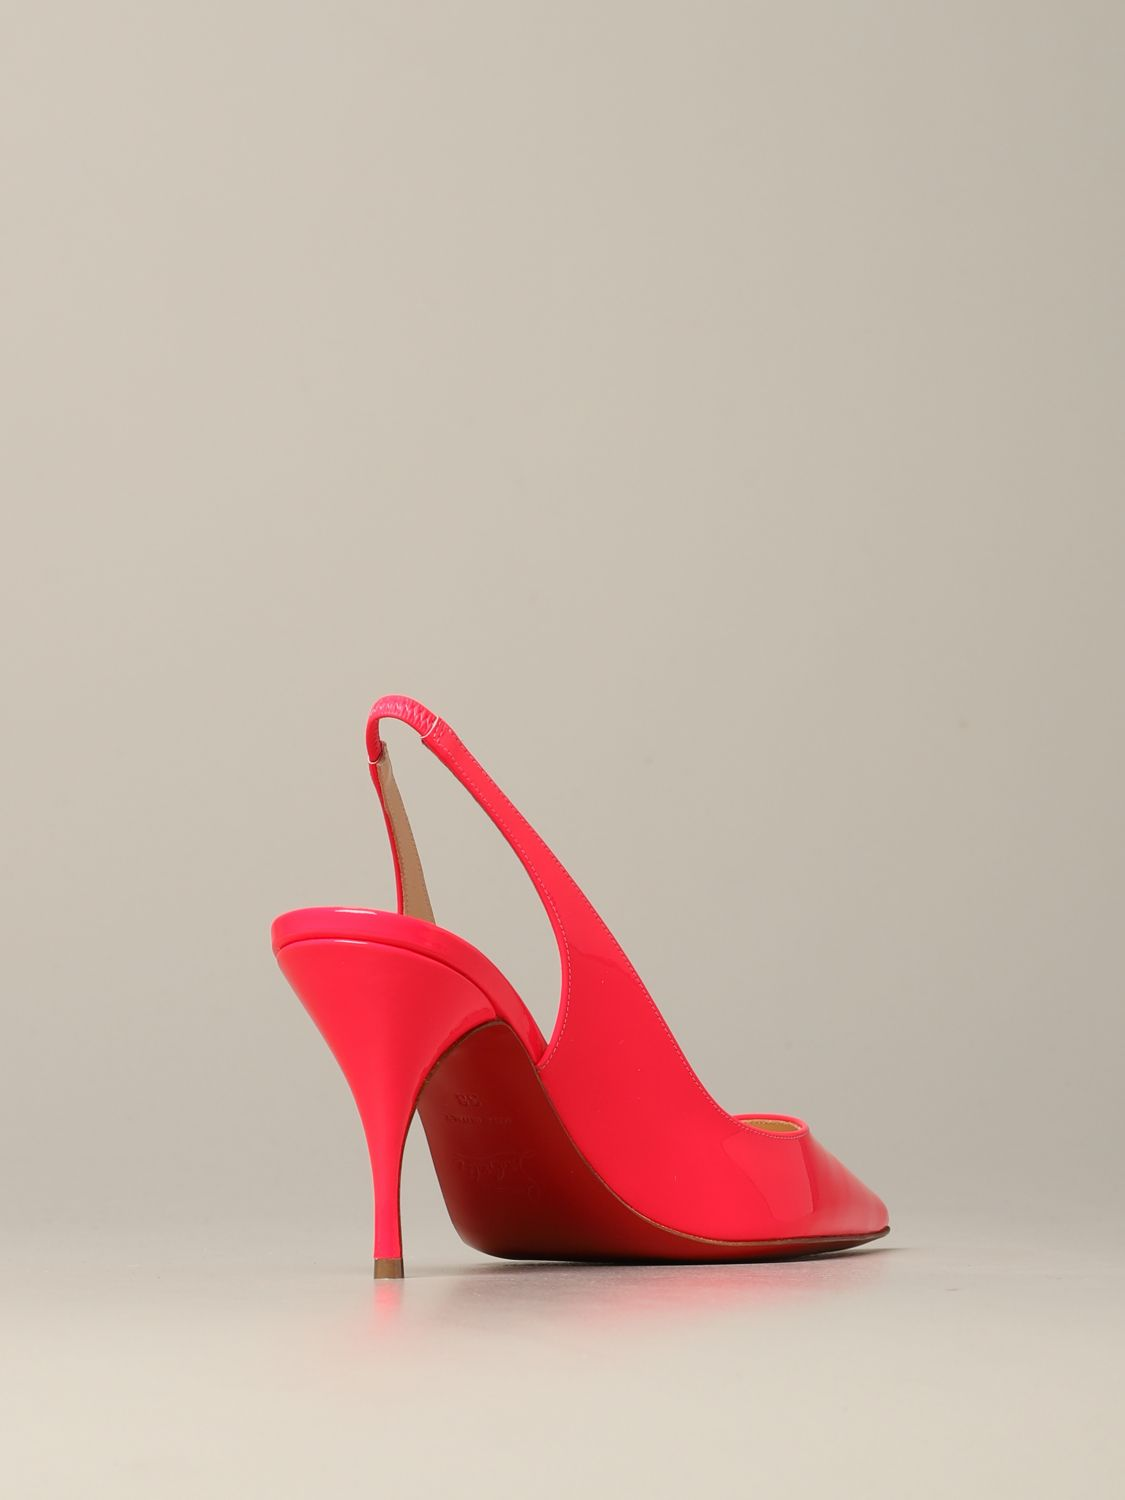 Christian Louboutin Clare sling back in fluorescent paint pink 5